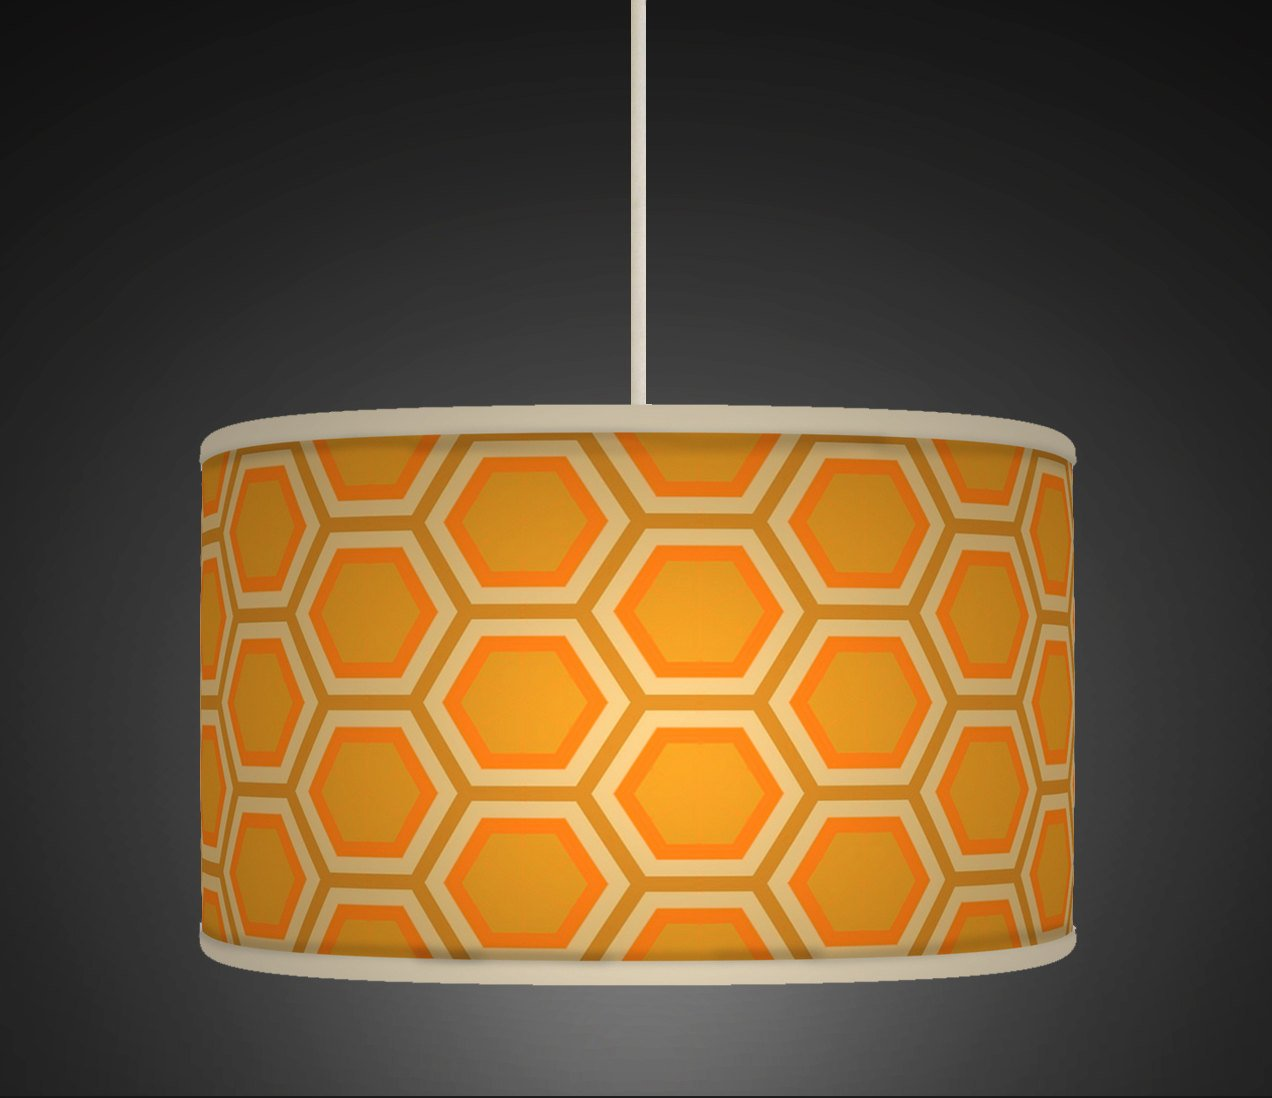 50cm 20 orange mustard honey comb retro geometric handmade 50cm 20 orange mustard honey comb retro geometric handmade printed fabric lamp drum lampshade floor or ceiling pendant light shade large lampshade 167 aloadofball Gallery